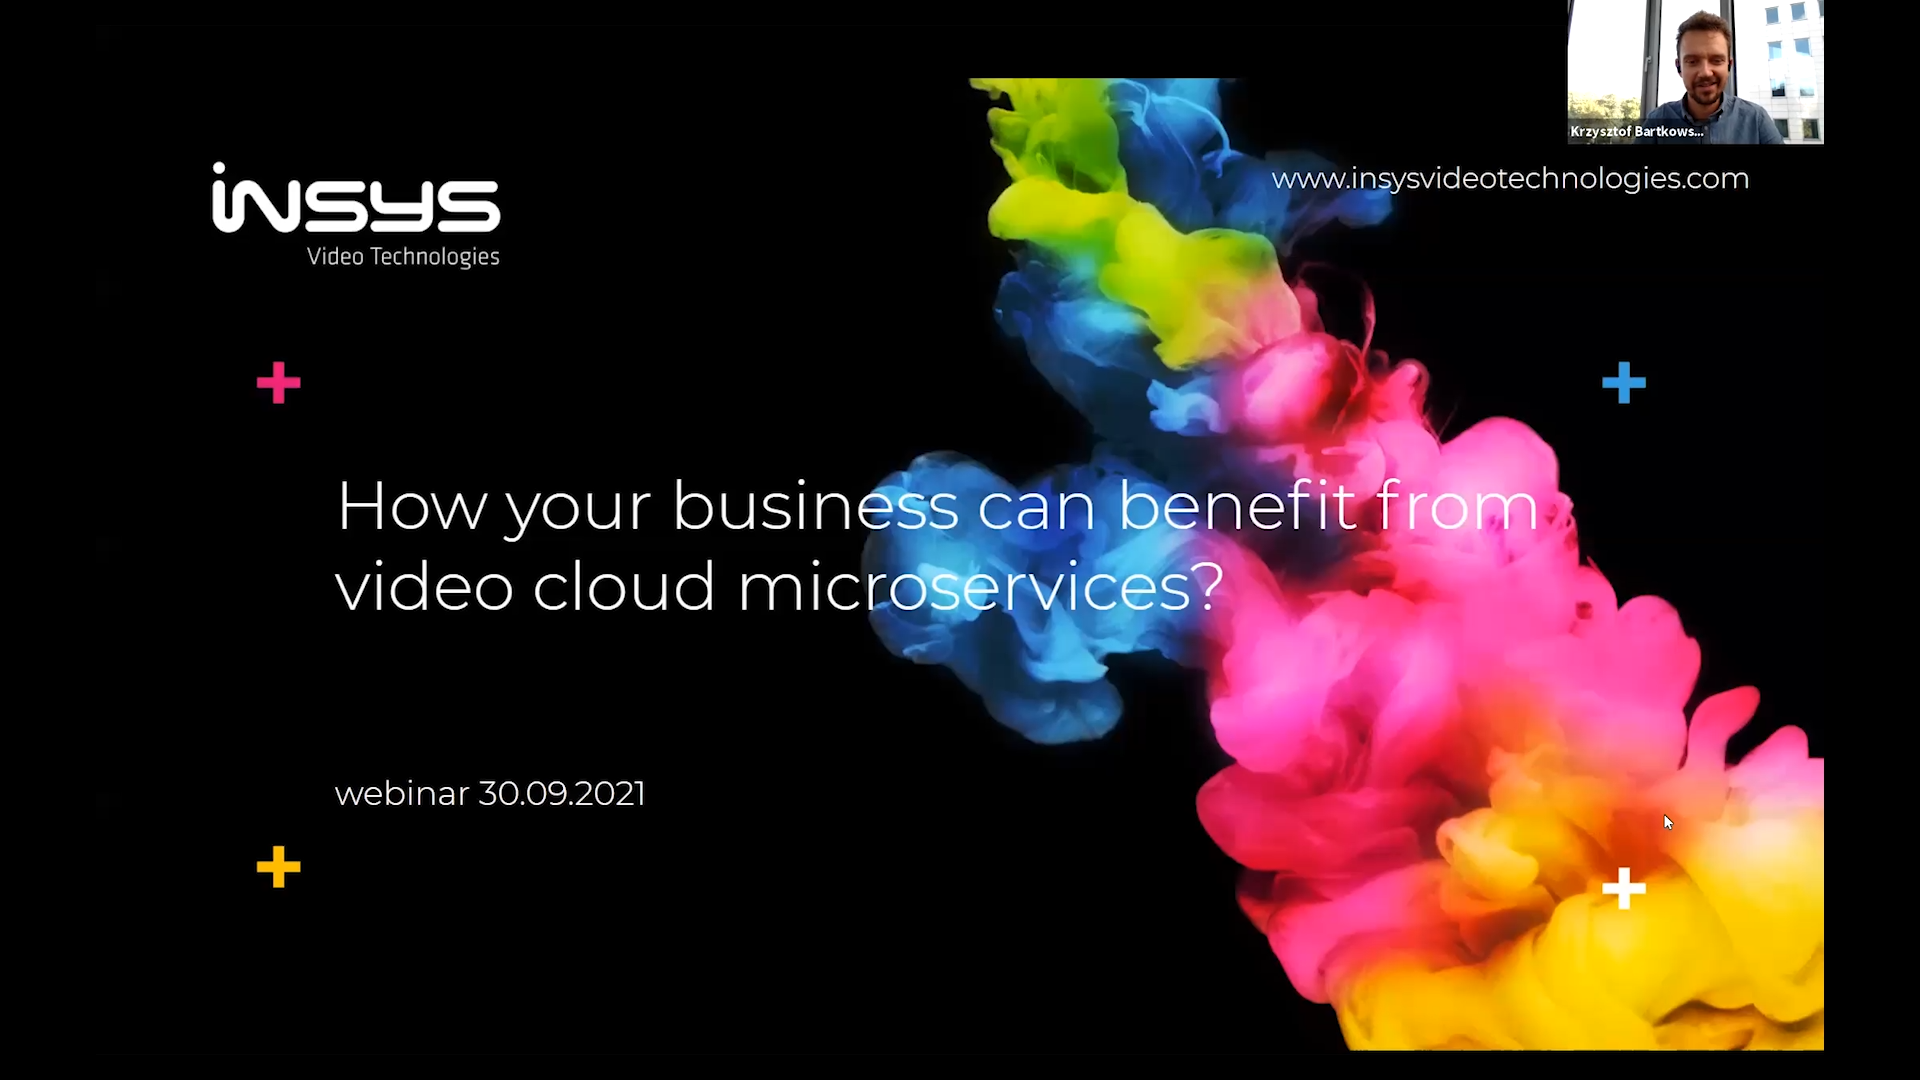 How-your-business-can-benefit-from-video-cloud-microservices